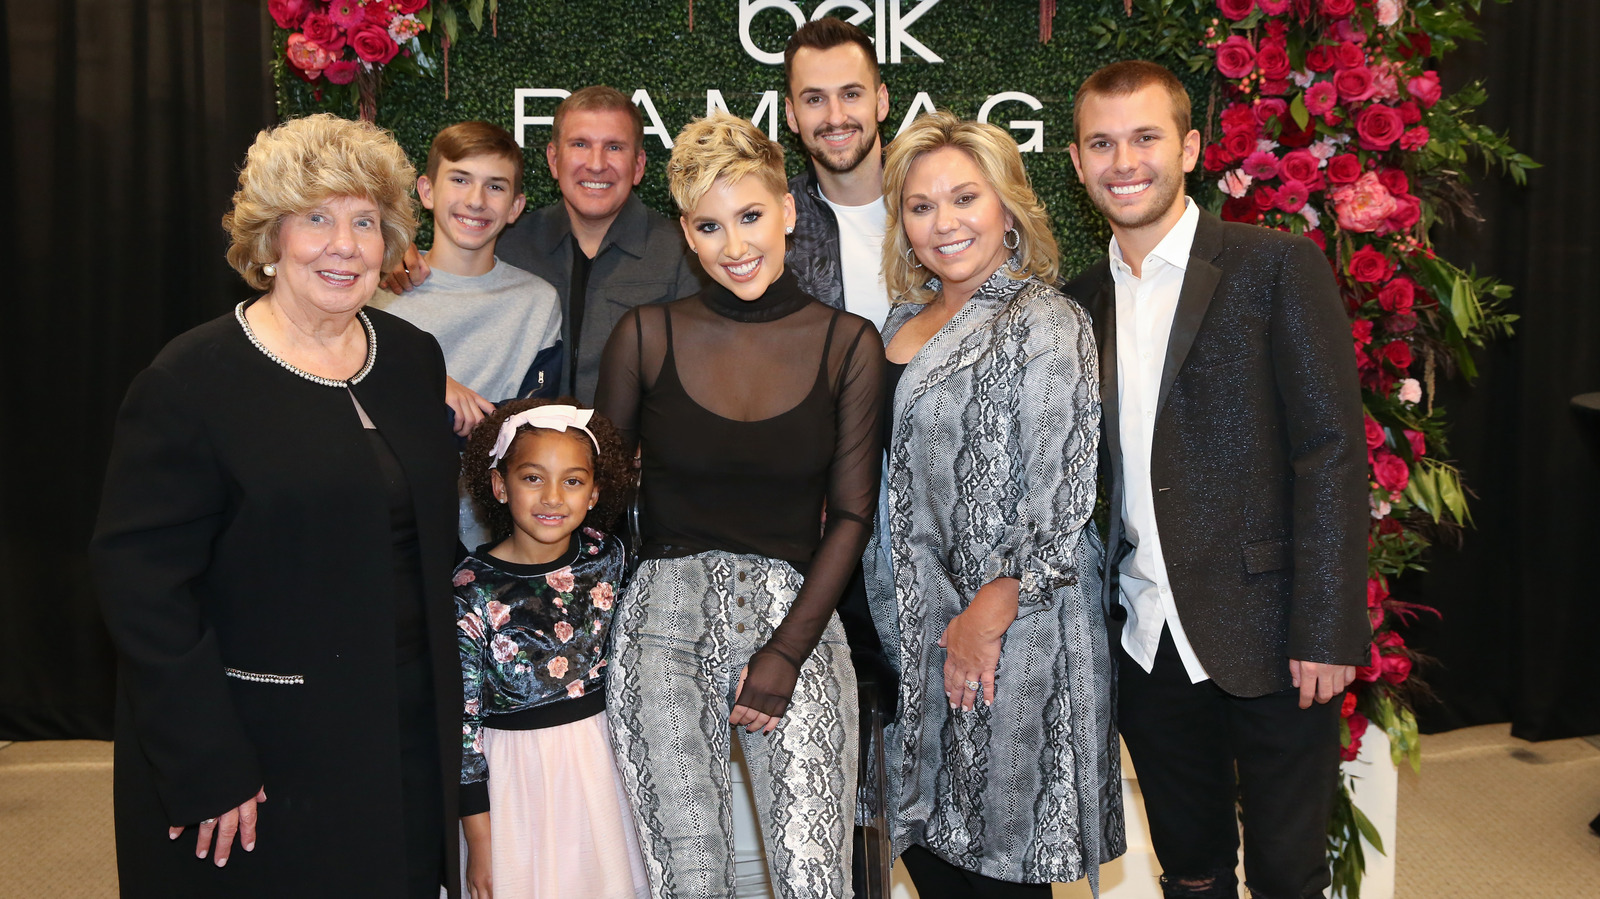 The Richest Member Of The Chrisley Family May Surprise You